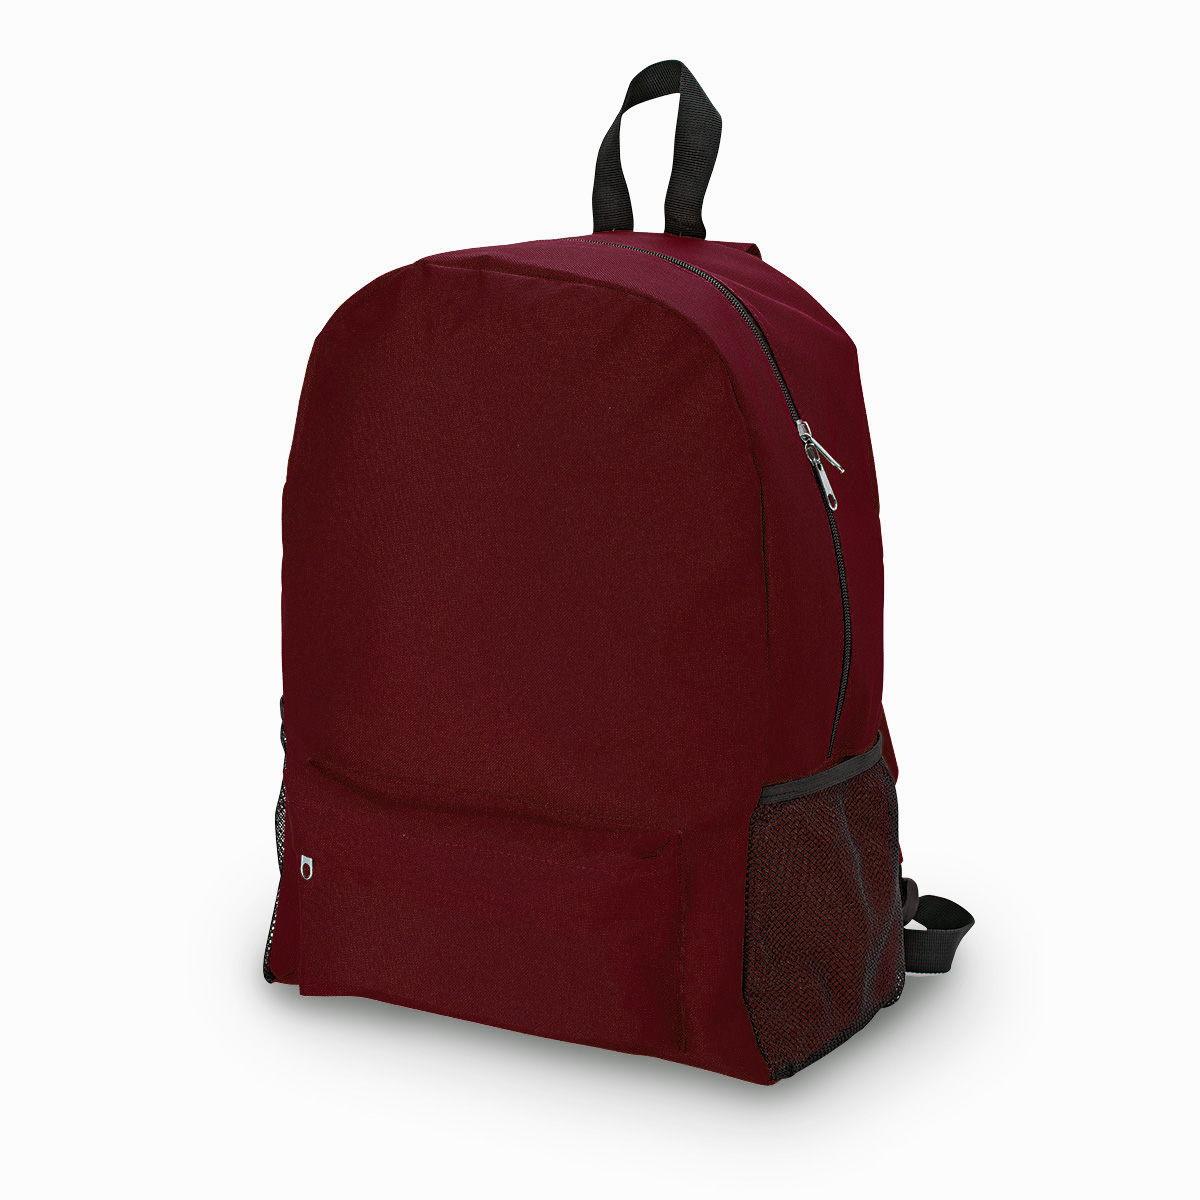 Spirit Backpack 2.0